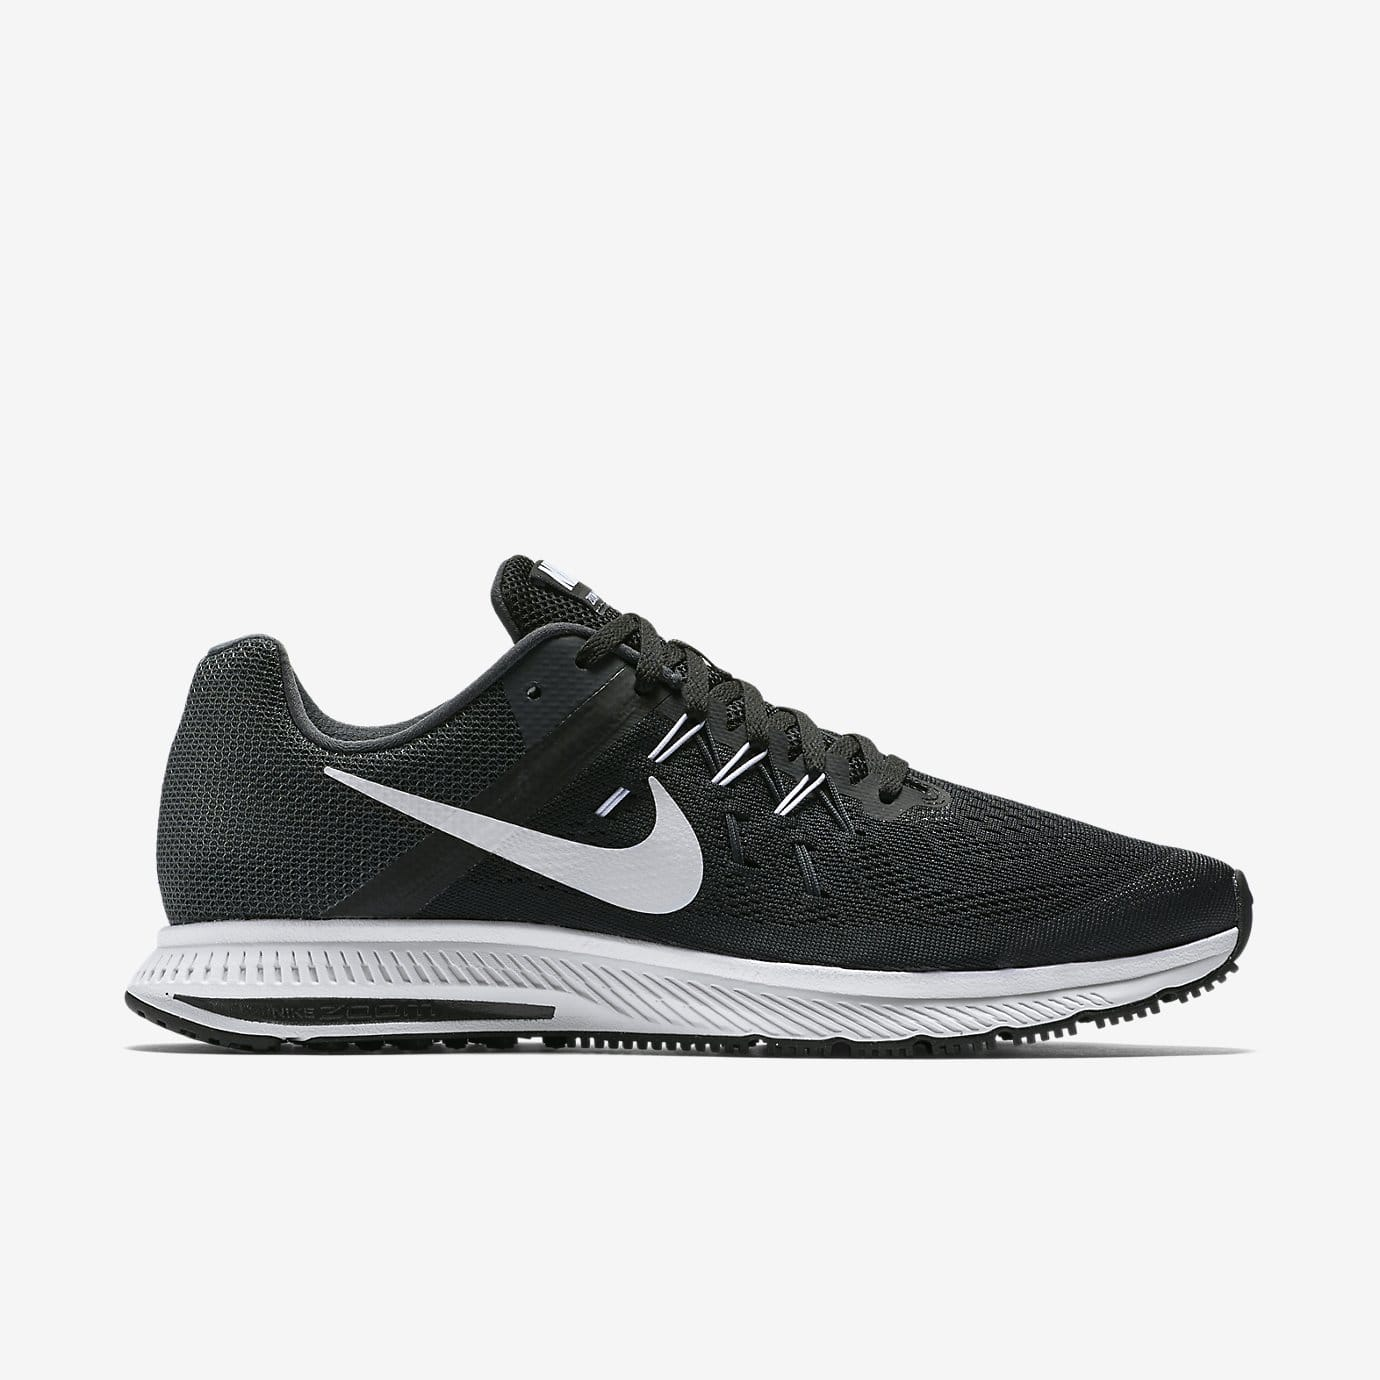 Nike Men's Zoom Winflo 2 Running Shoes (Black/White or Blue)  $40 + Free S/H w/ Nike+ Acct.